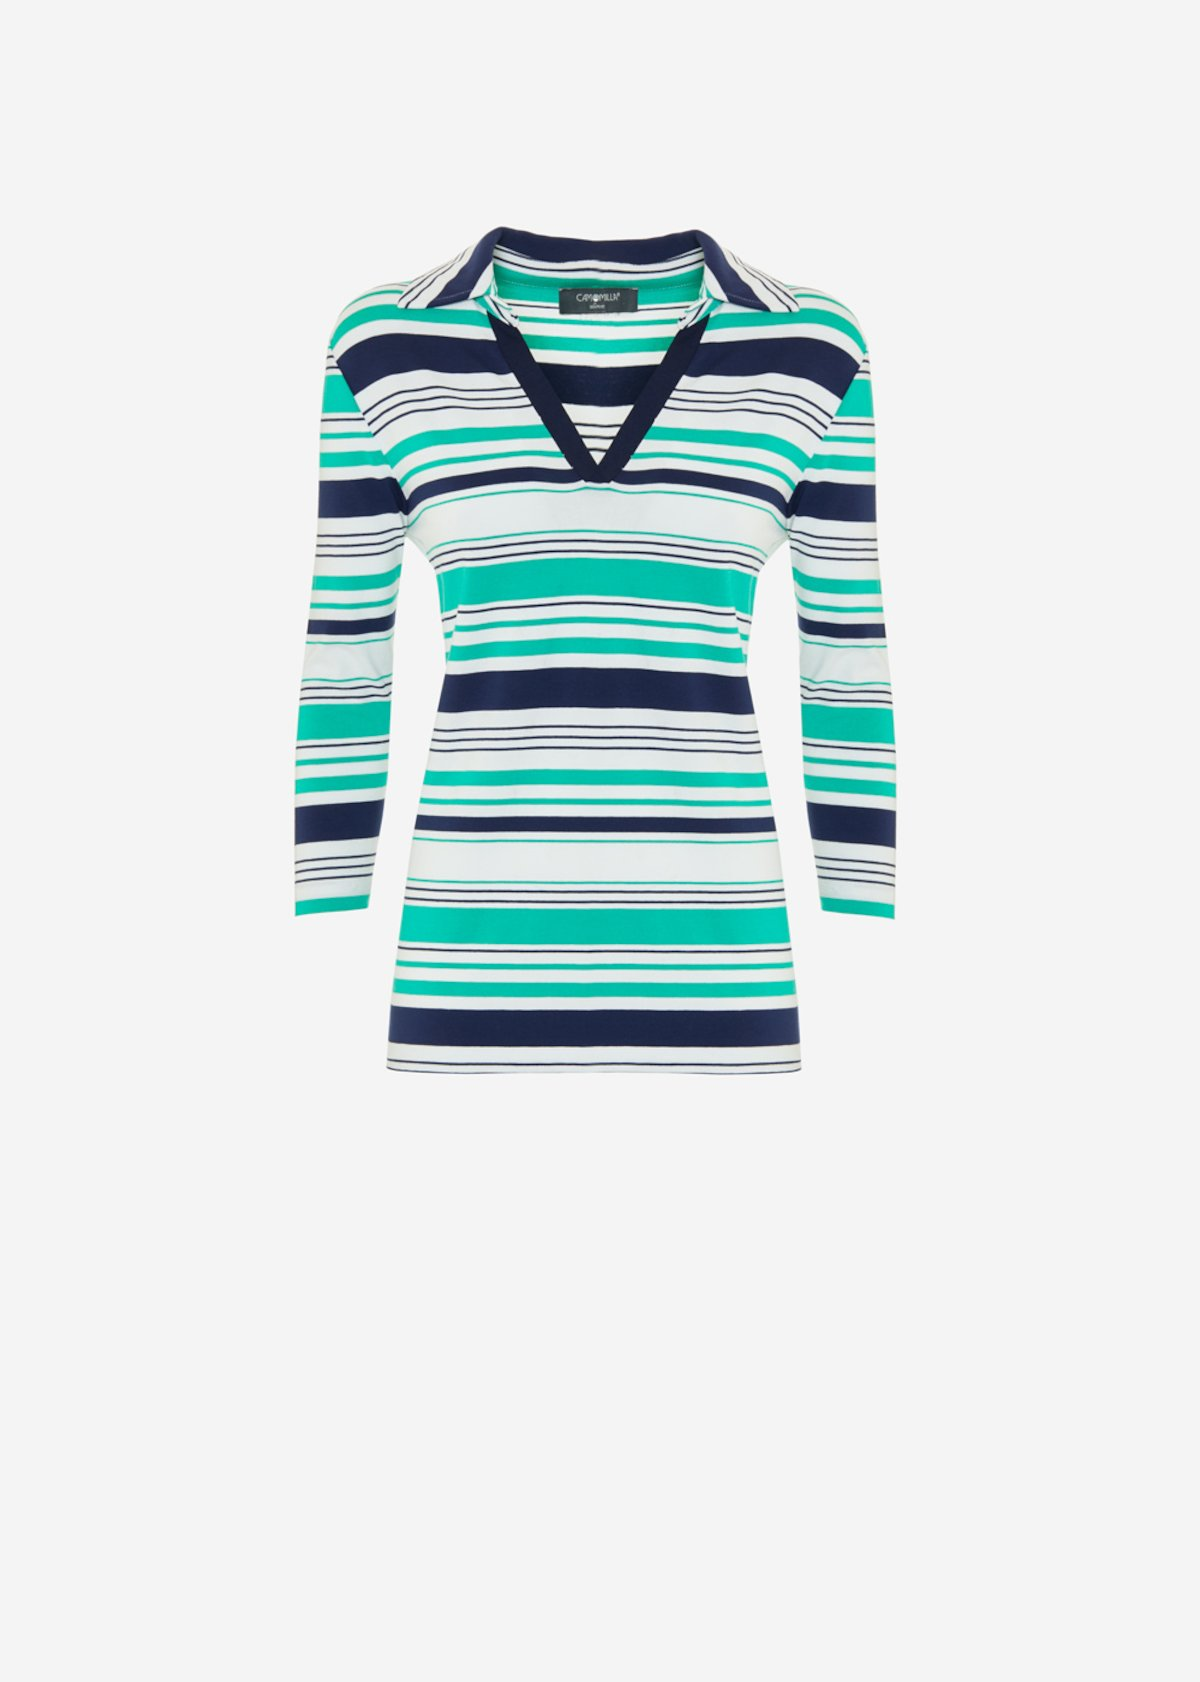 Selyn multicolour striped t-shirt